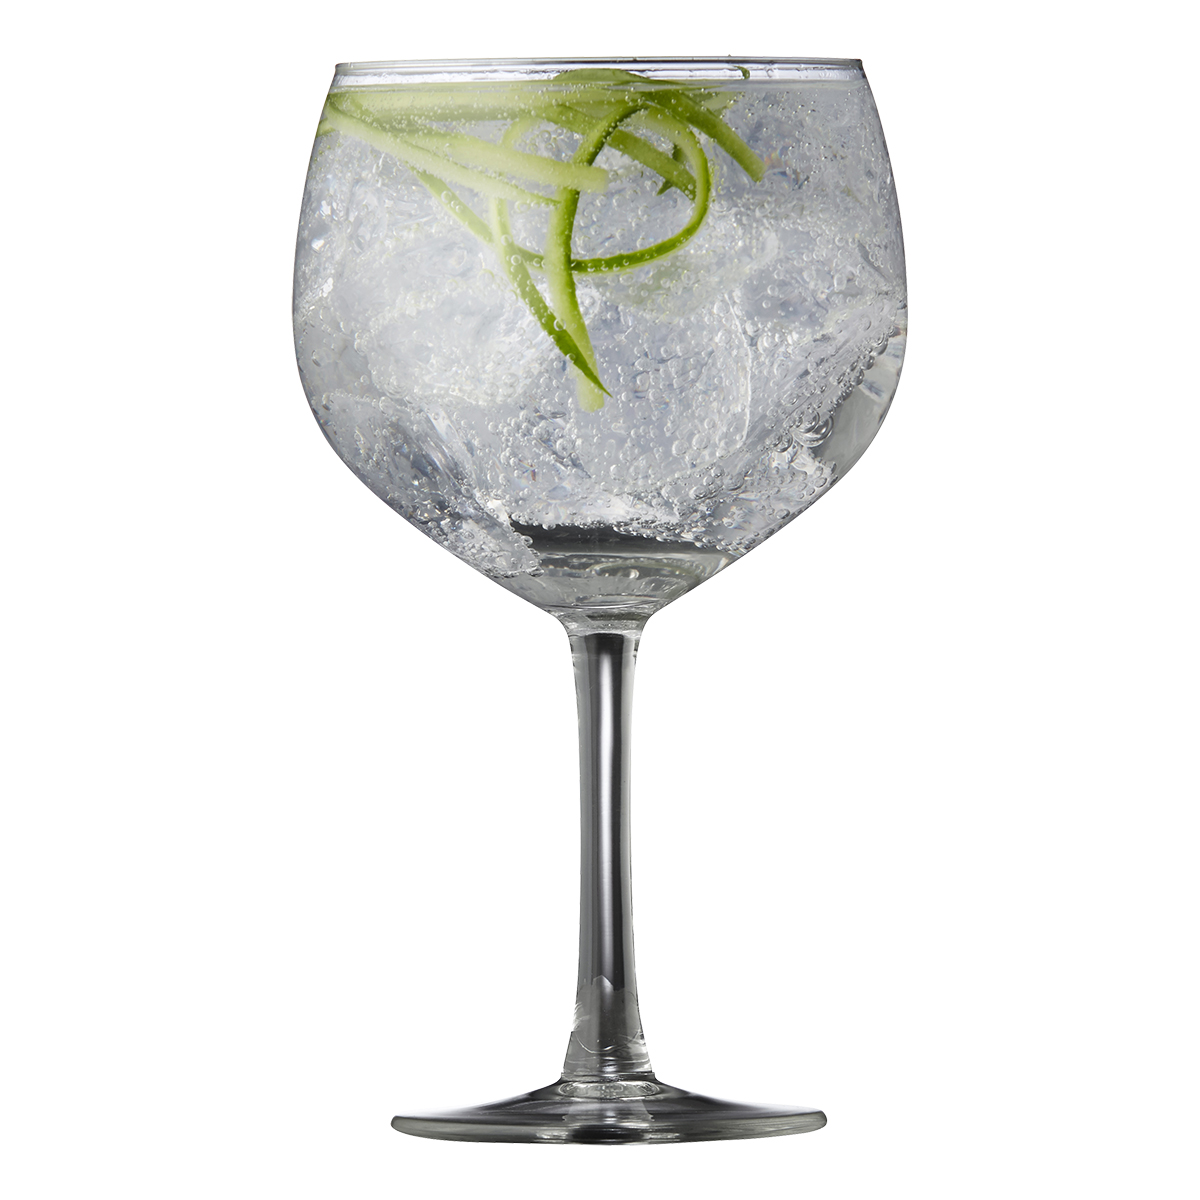 Image of   Lyngby Gin & Tonic glas - Juvel - 4 stk.